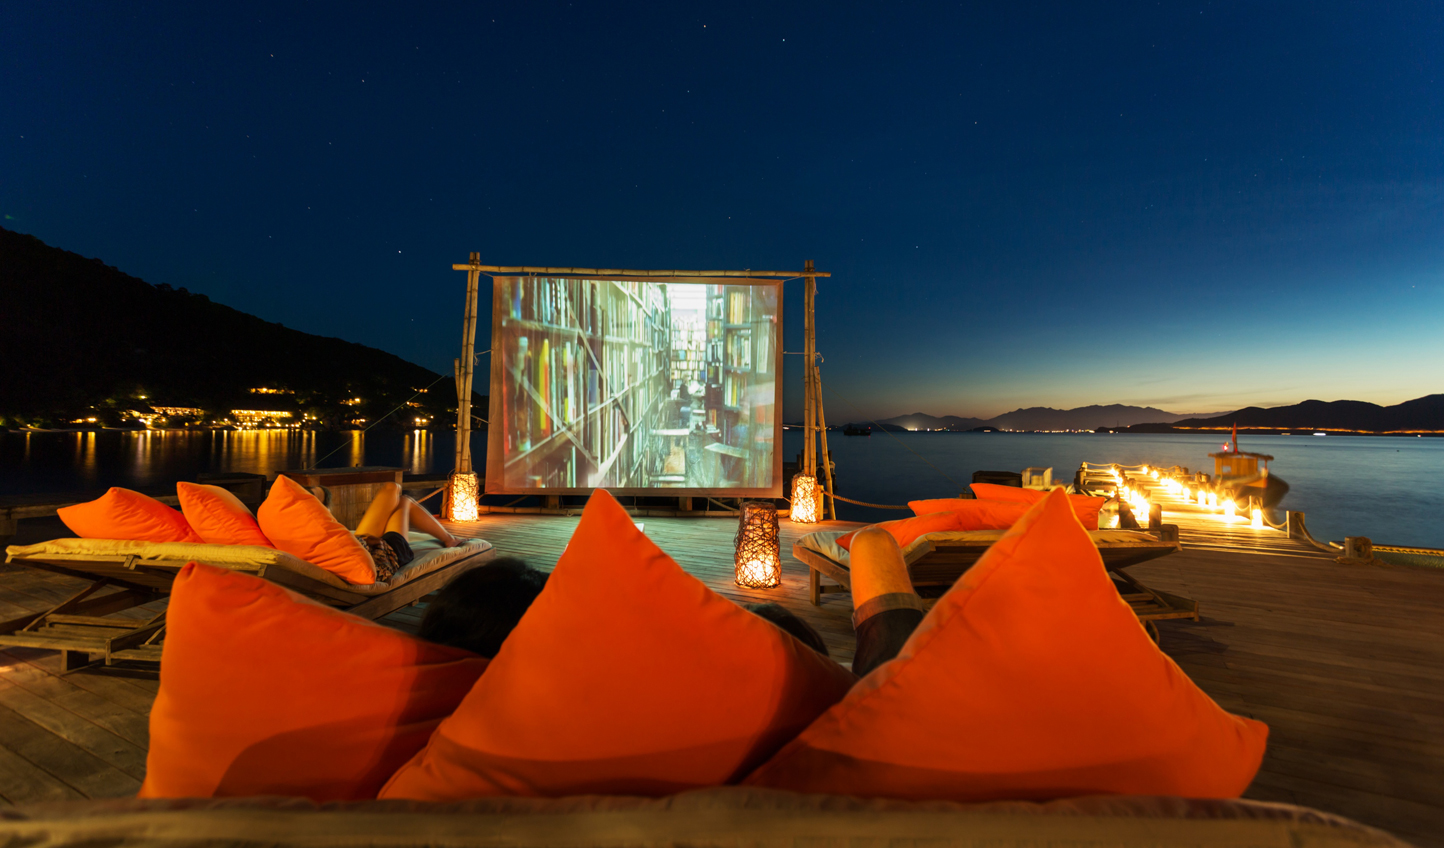 Spend the evening with a film beneath the stars